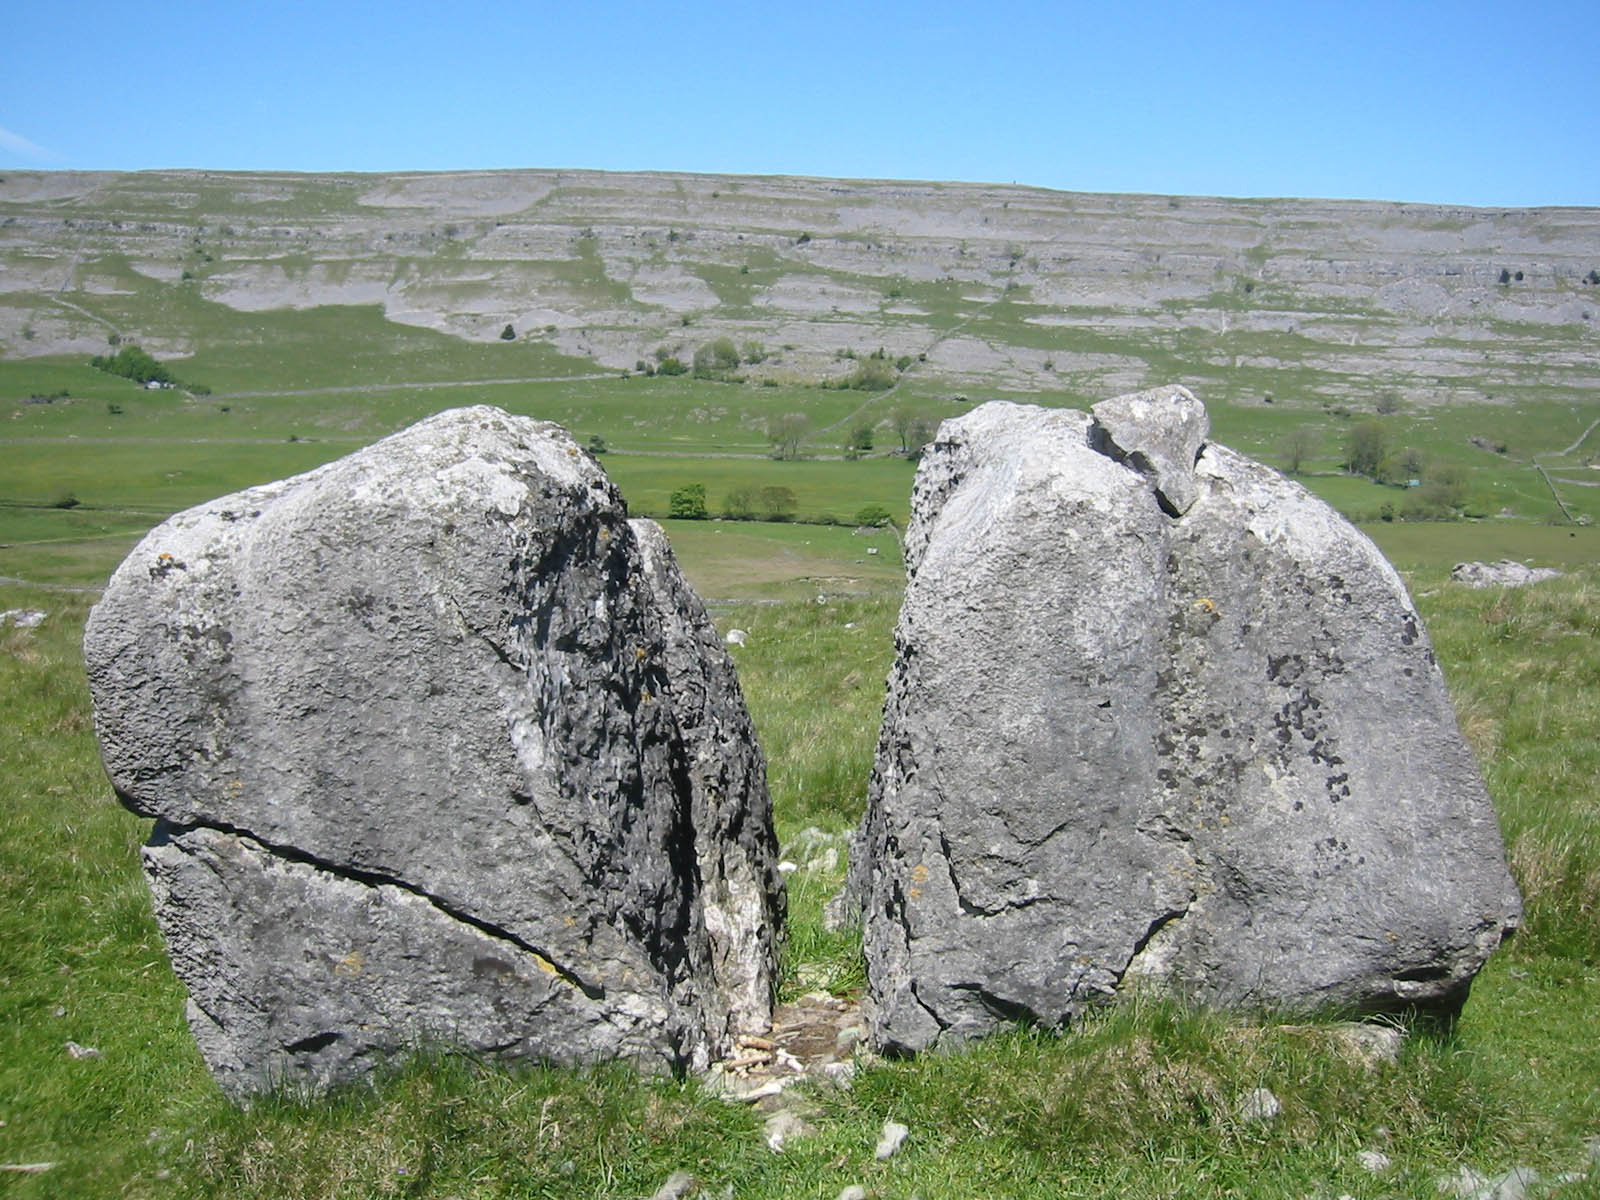 Cleft boulder, with sheep remains